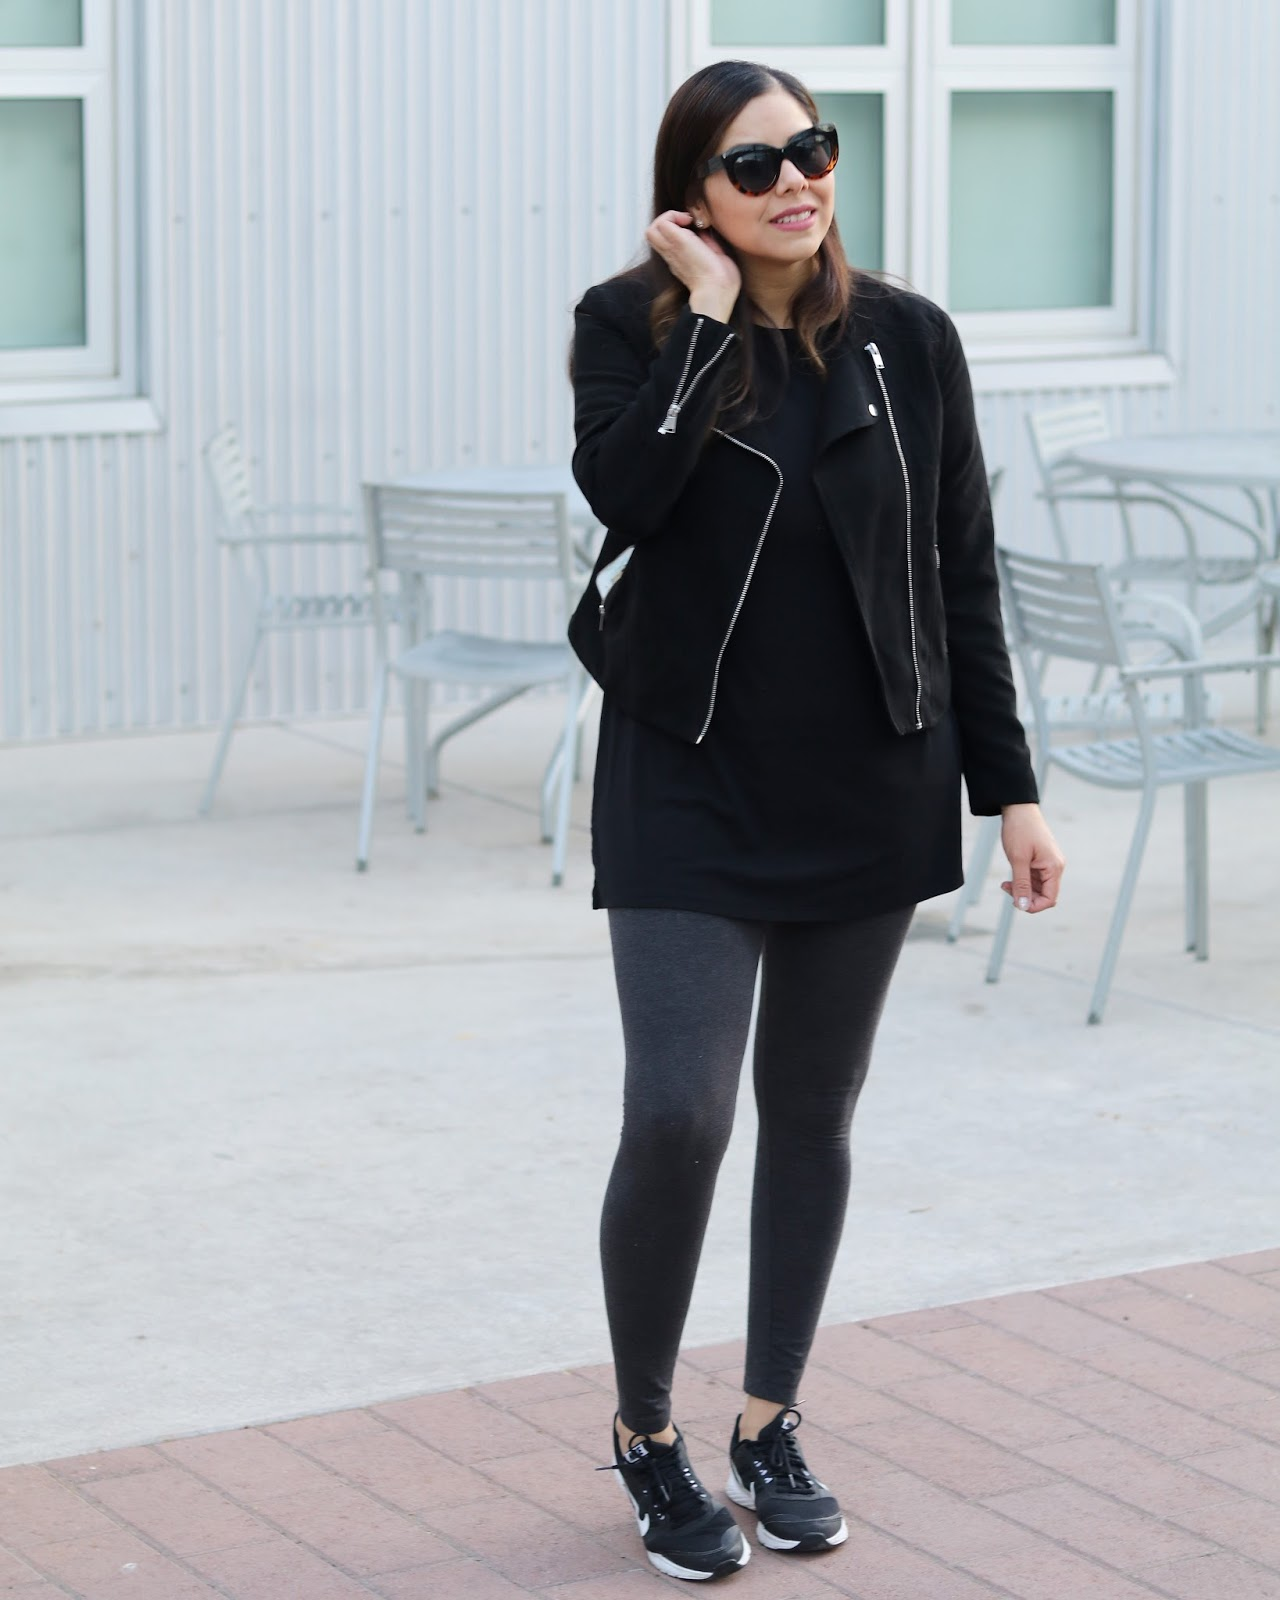 new mom style, mom style, stylish comfortable outfit